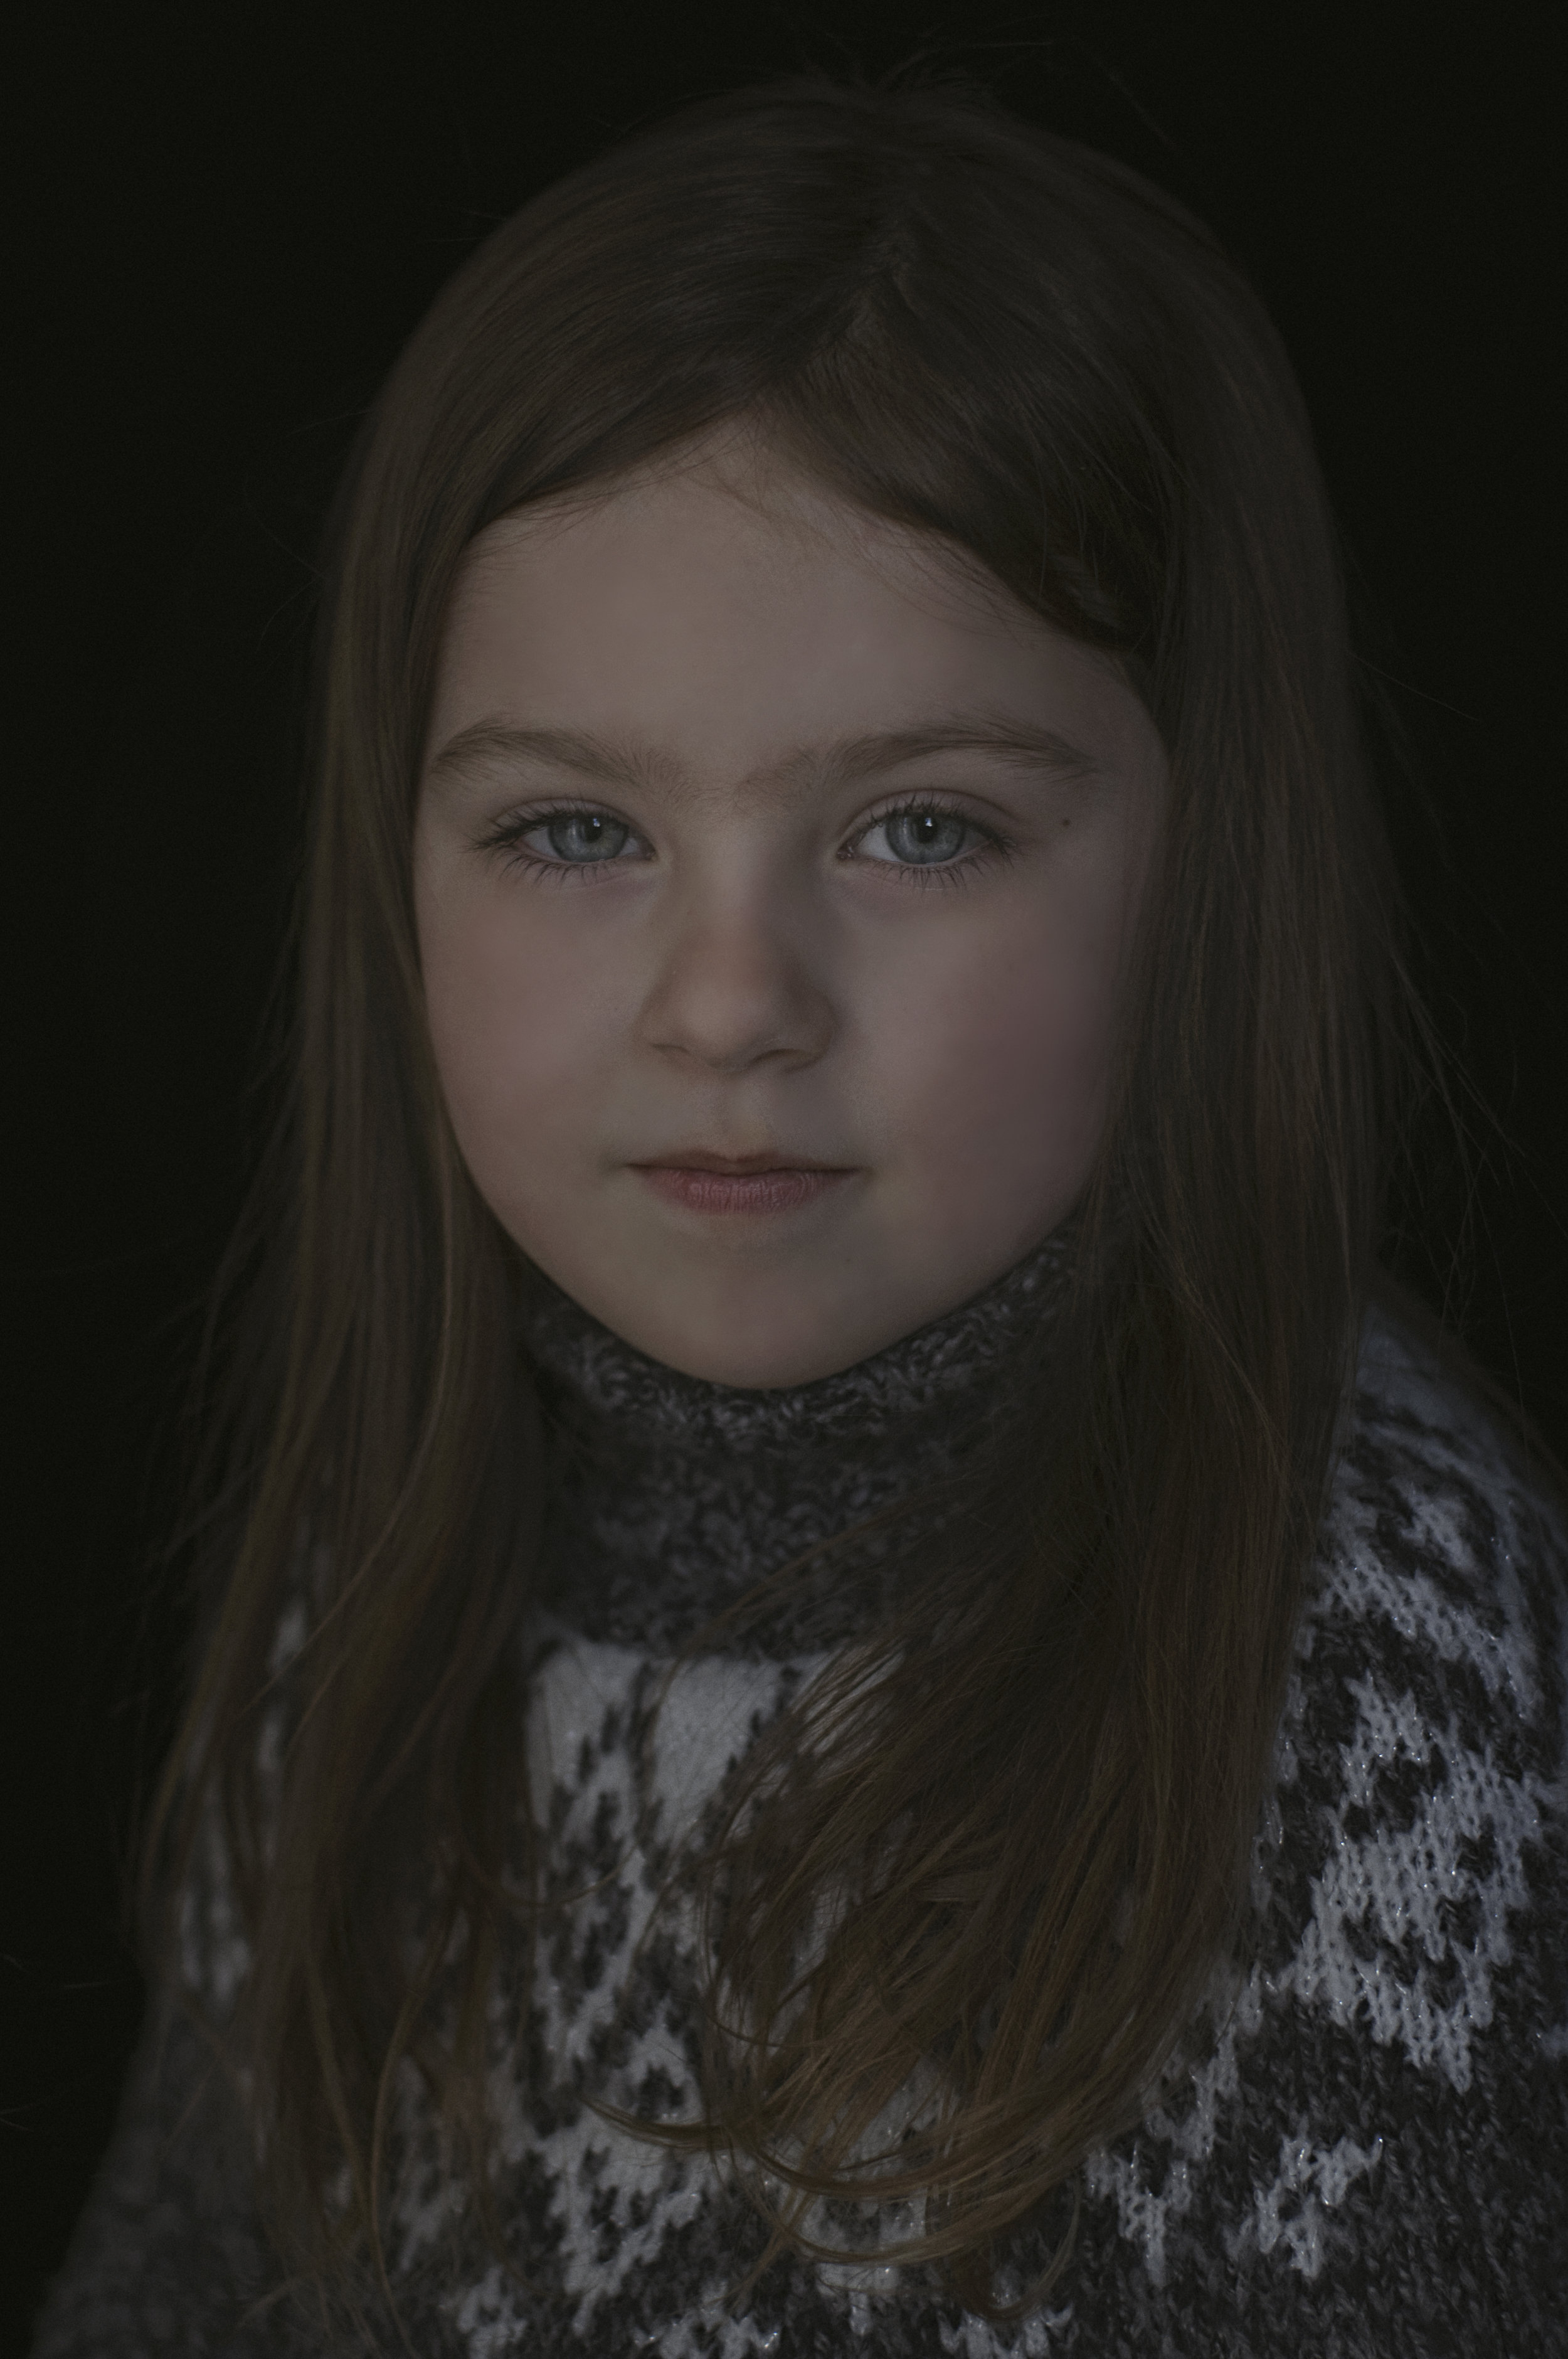 Heirloom Portrait of a Young Girl